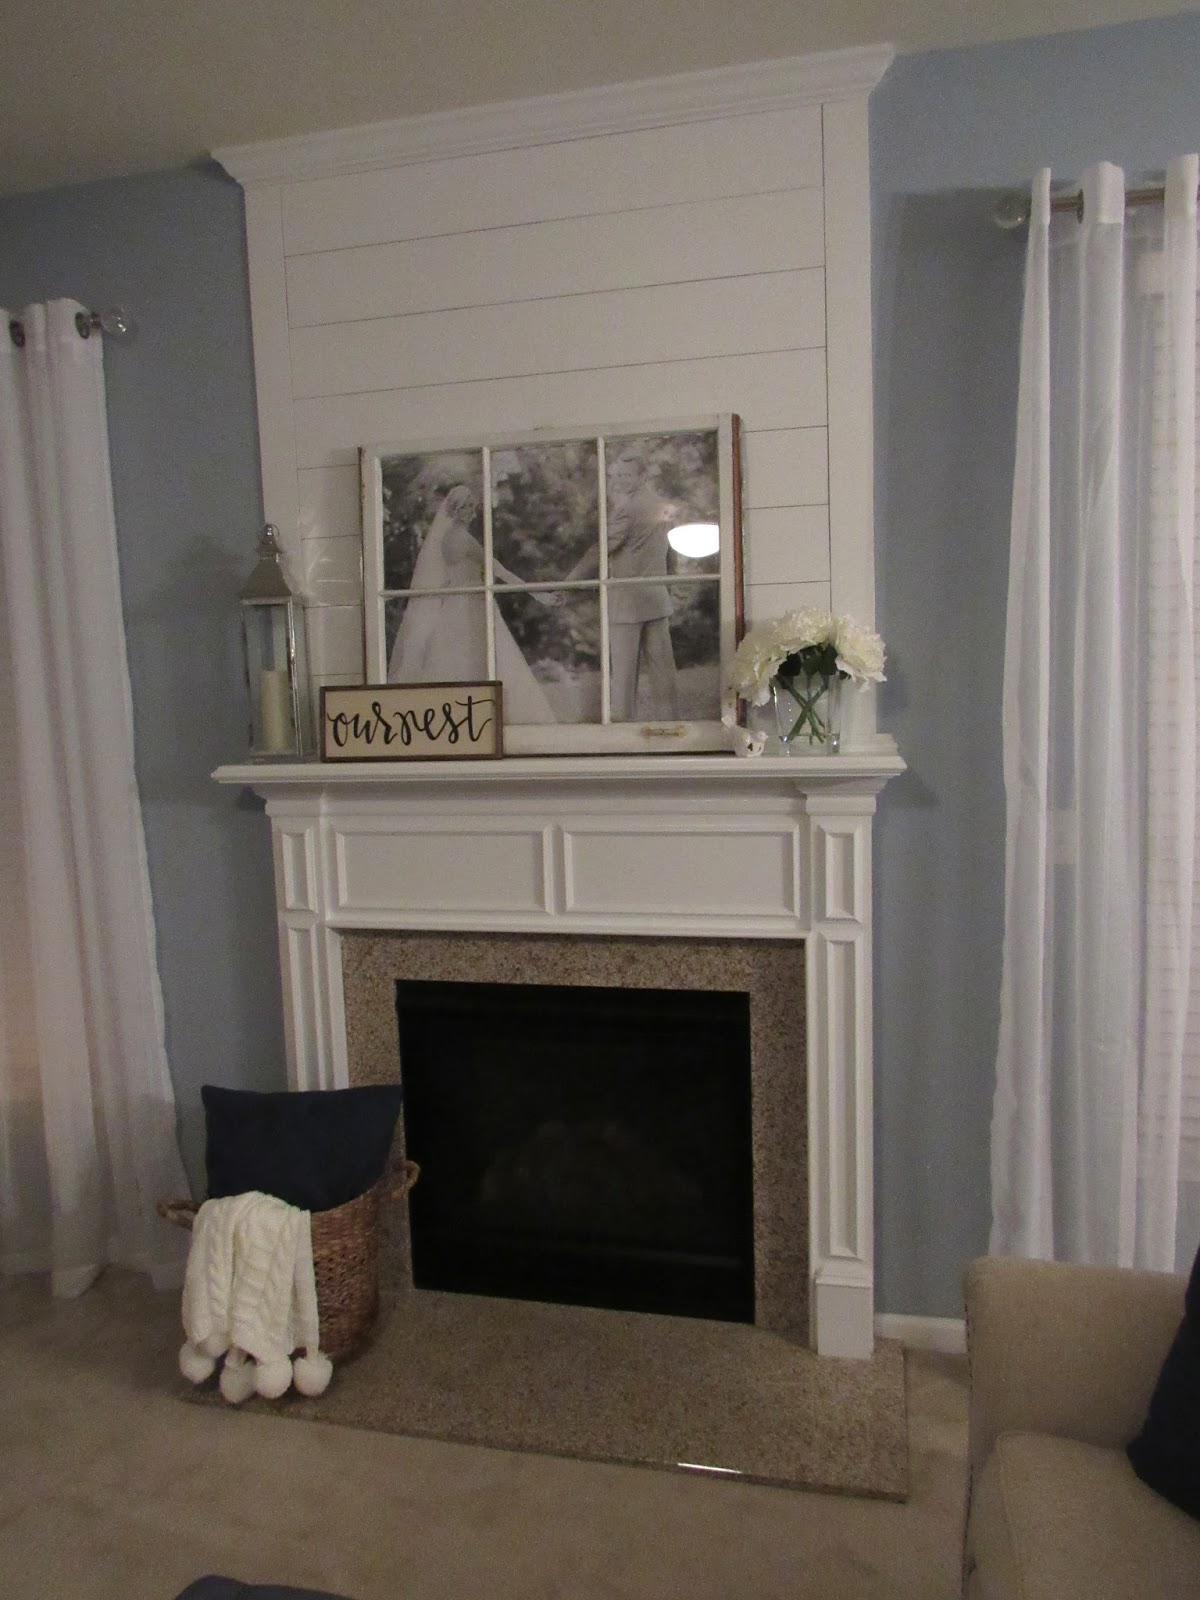 my old kentucky home design: diy shiplap fireplace makeover